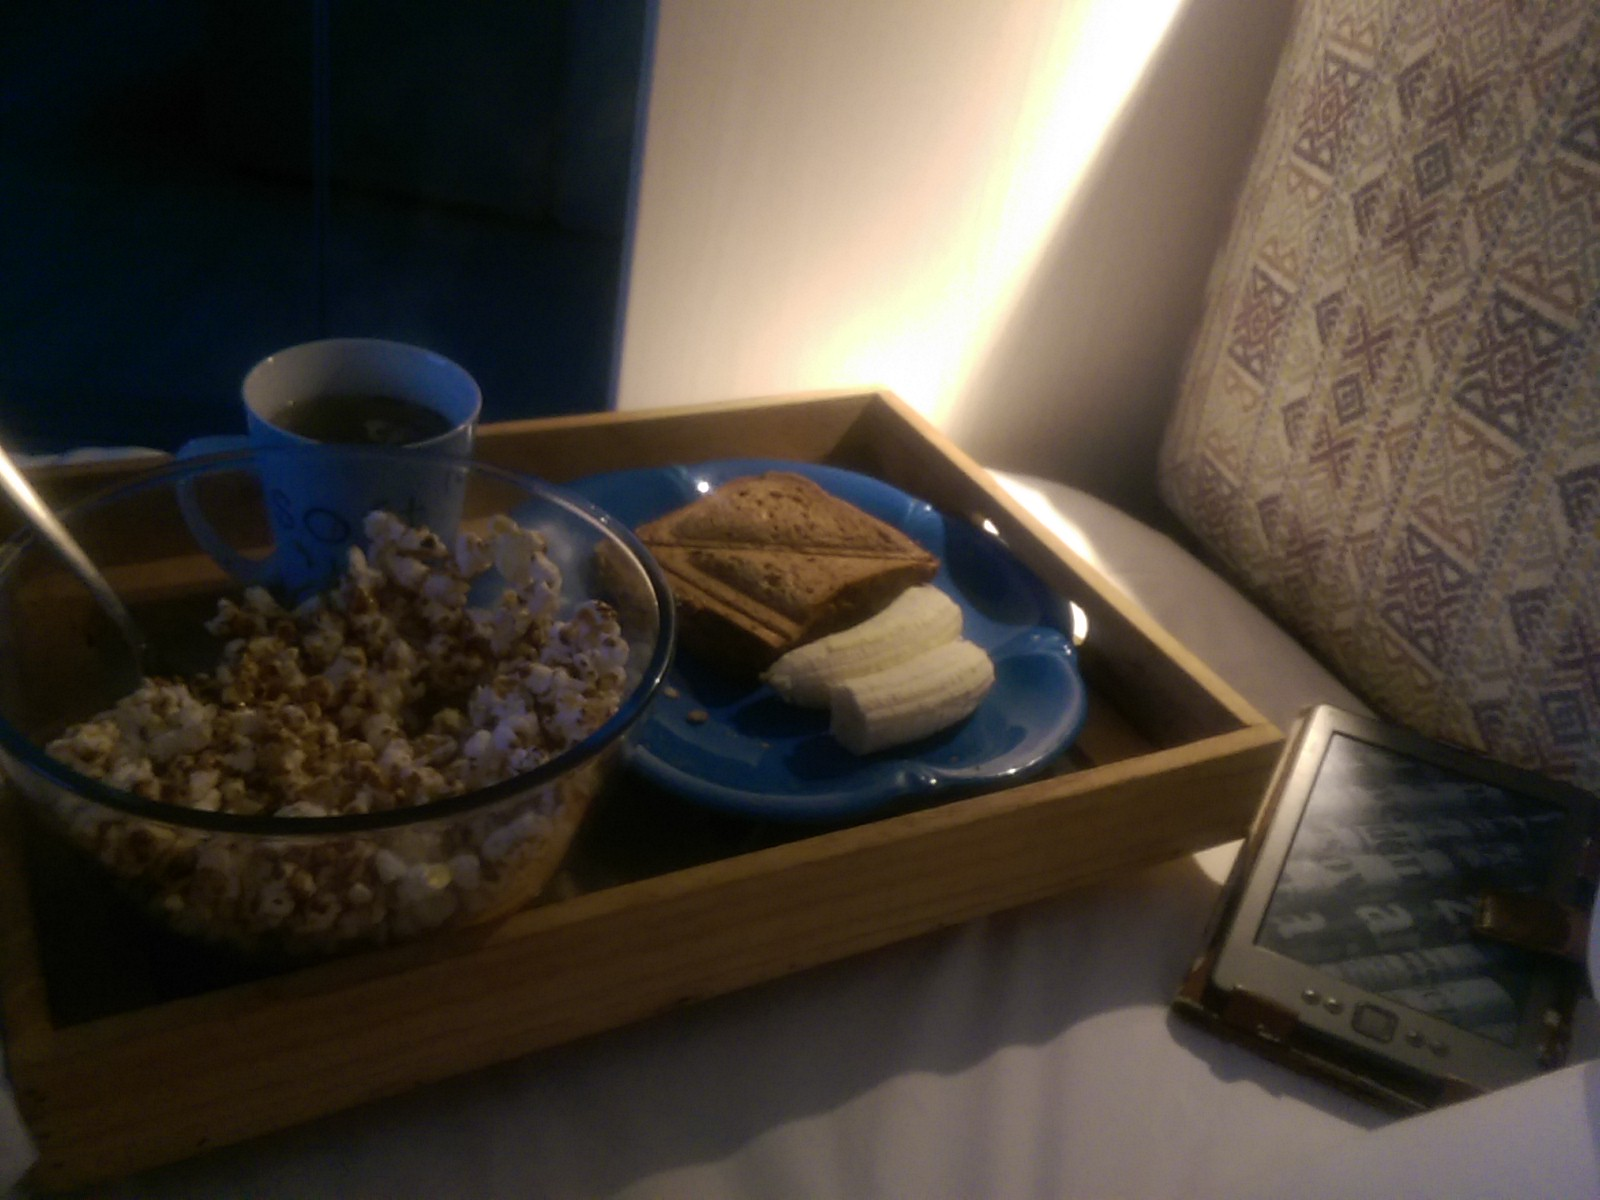 A tray on a bed with a blue plate with a sandwich, a cup, and a bowl of popcorn